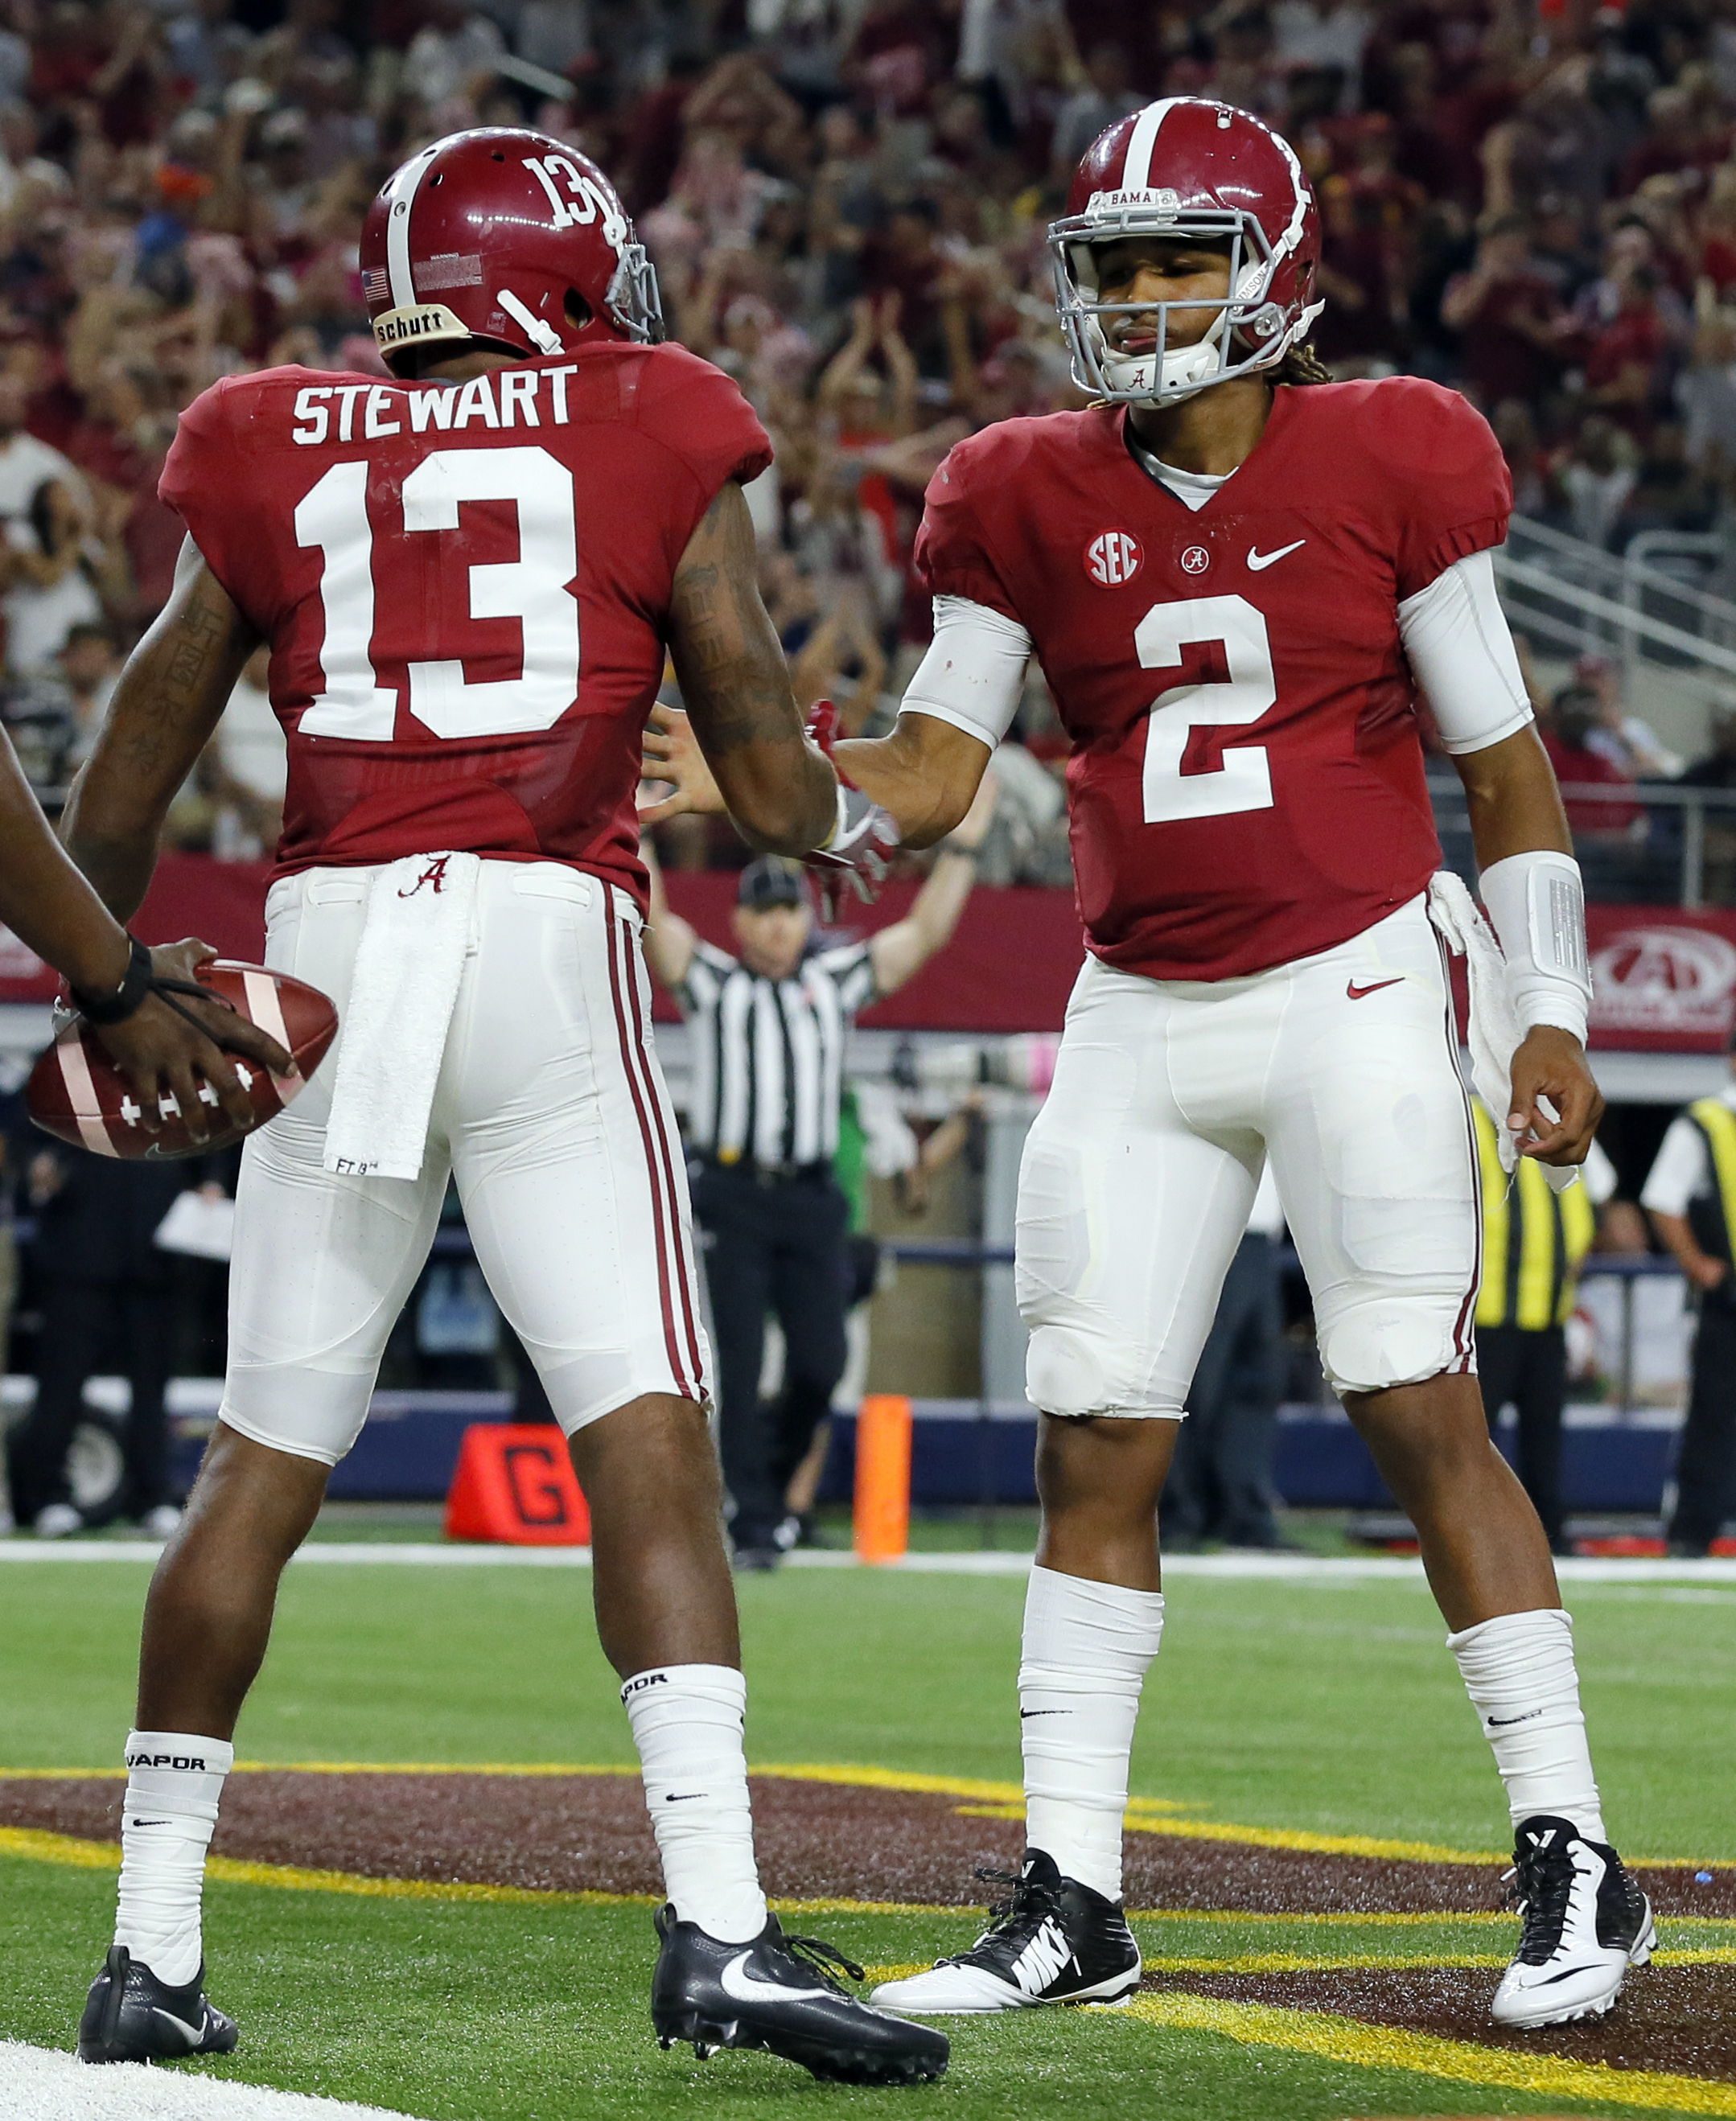 Alabama quarterback Jalen Hurts, right, is congratulated by teammate ArDarius Stewart after scoring on a 7-yard run during the second half of an NCAA college football game against Southern California on Saturday, Sept. 3, 2016, in Arlington, Texas. (AP Ph